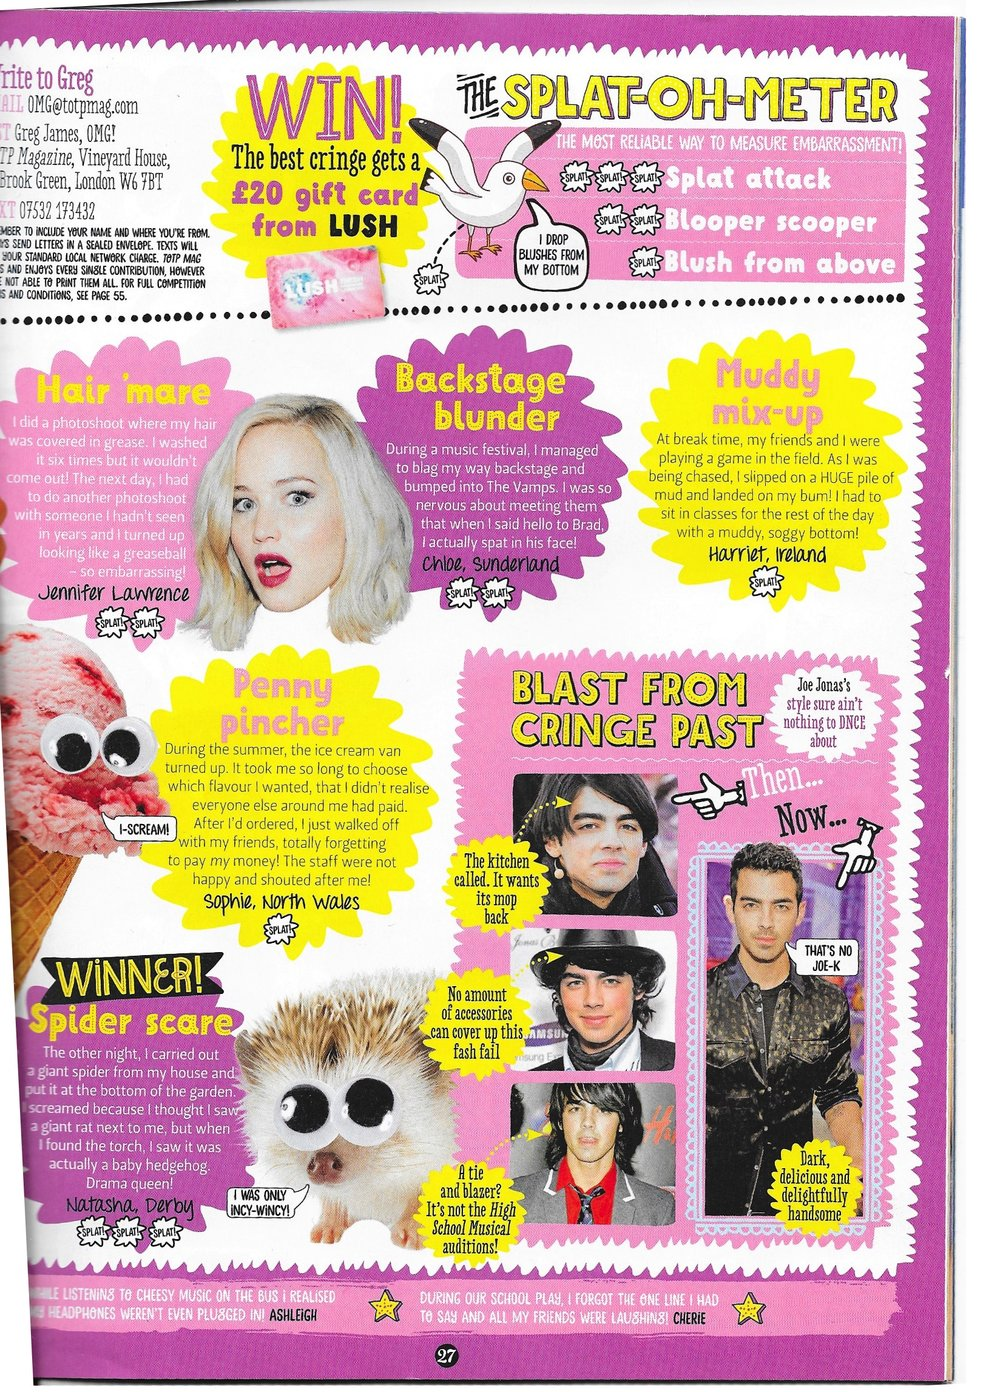 Top of the Pops - OMG Cringe spread, page 2